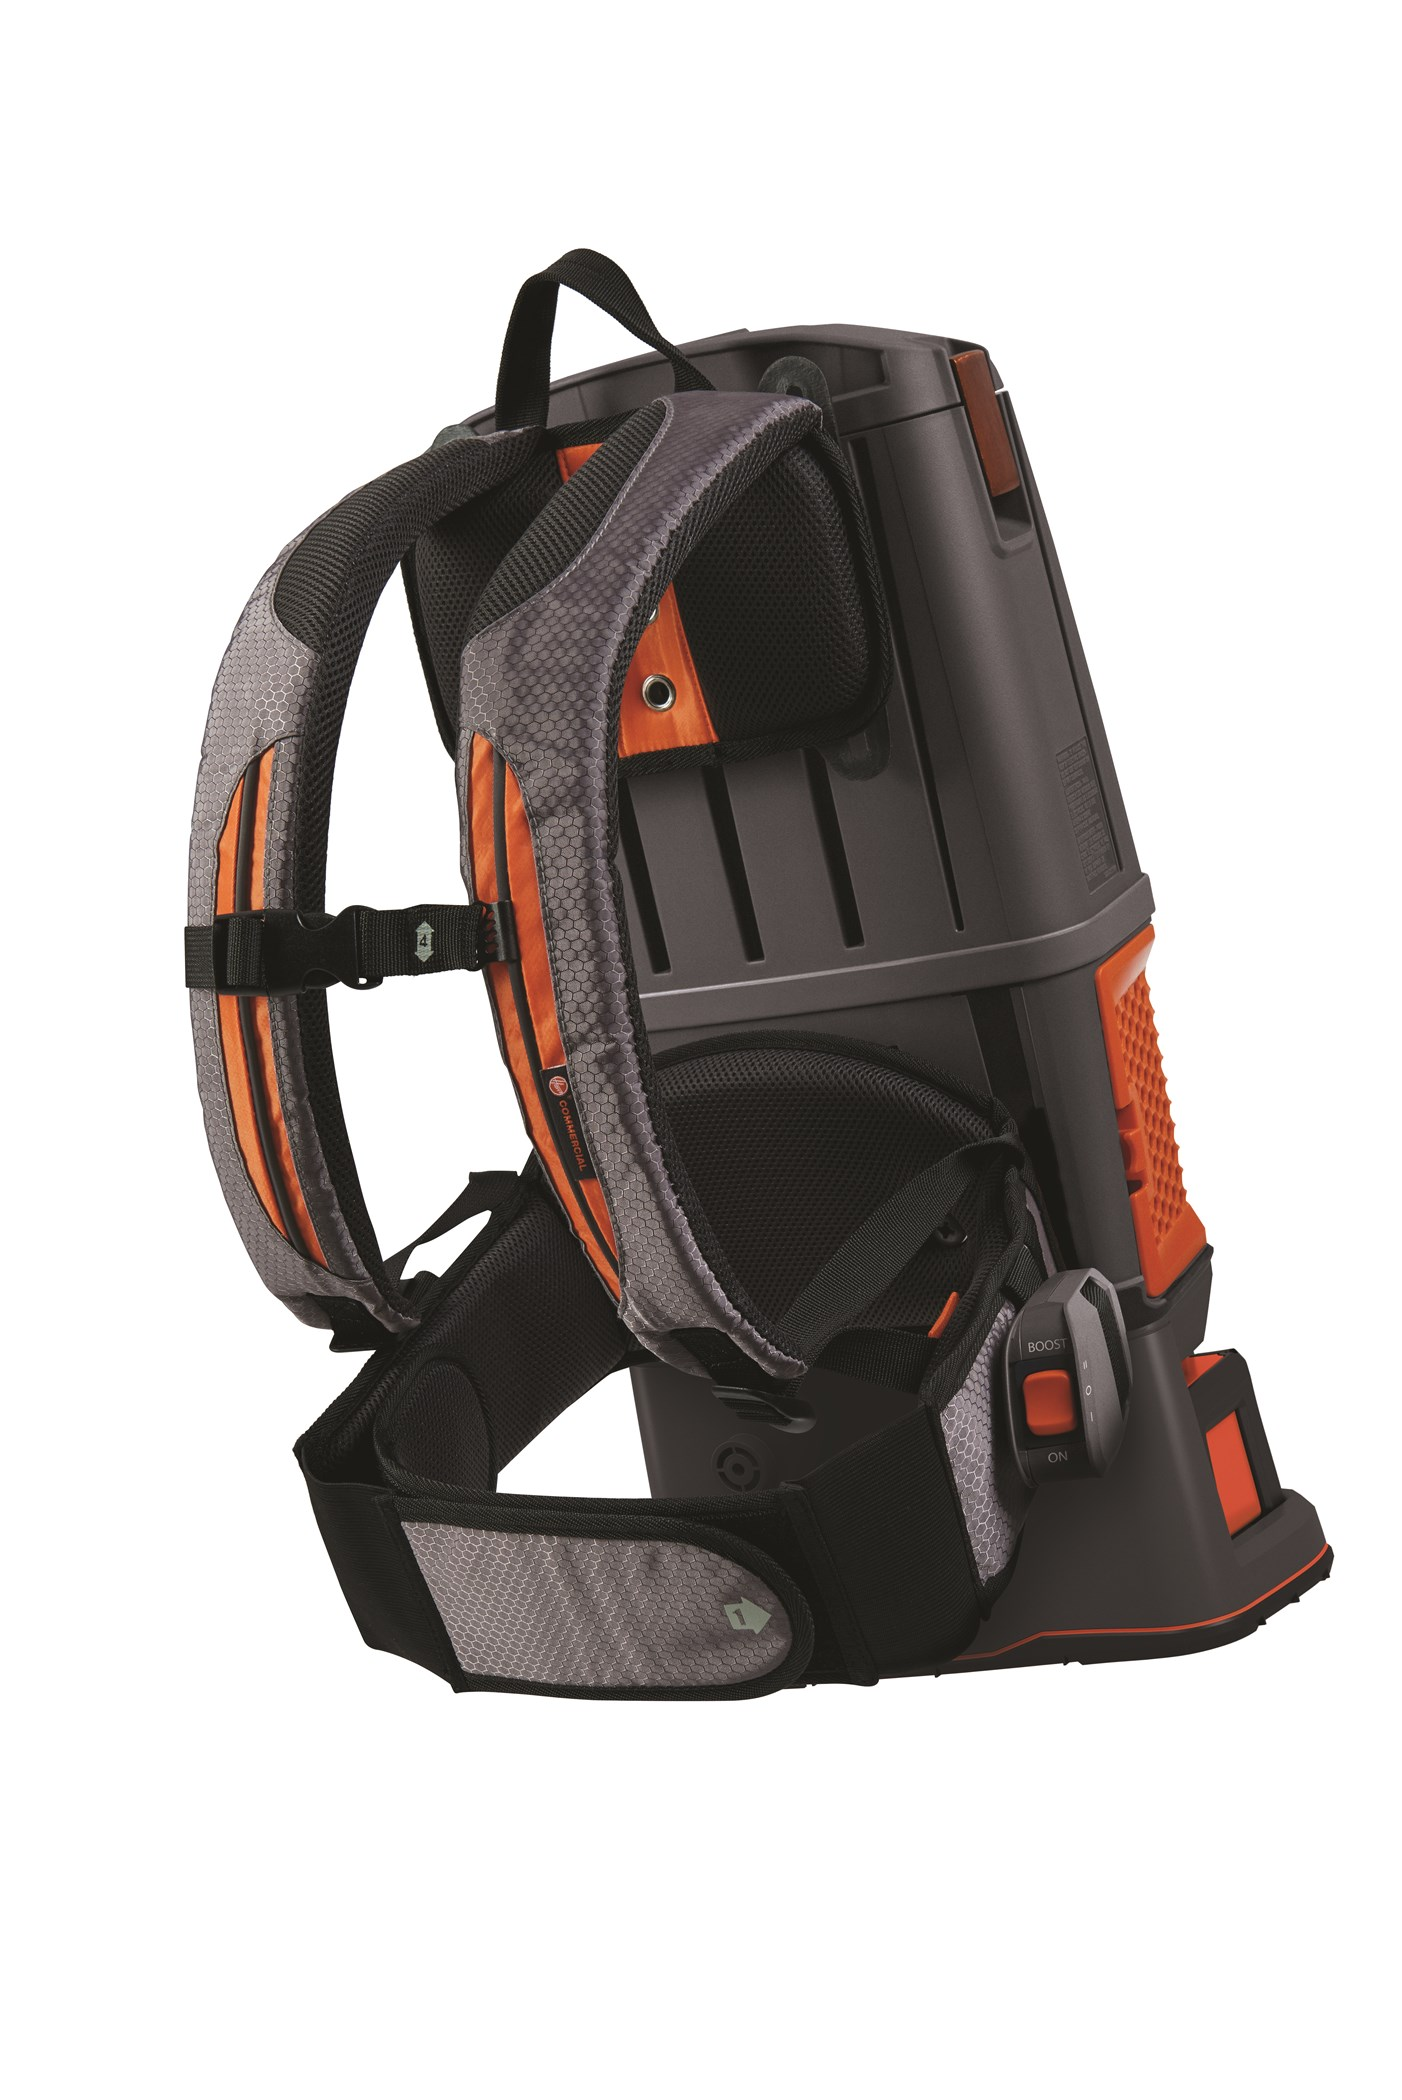 HUSHTONE 6Q Cordless Backpack Hoover Commercial